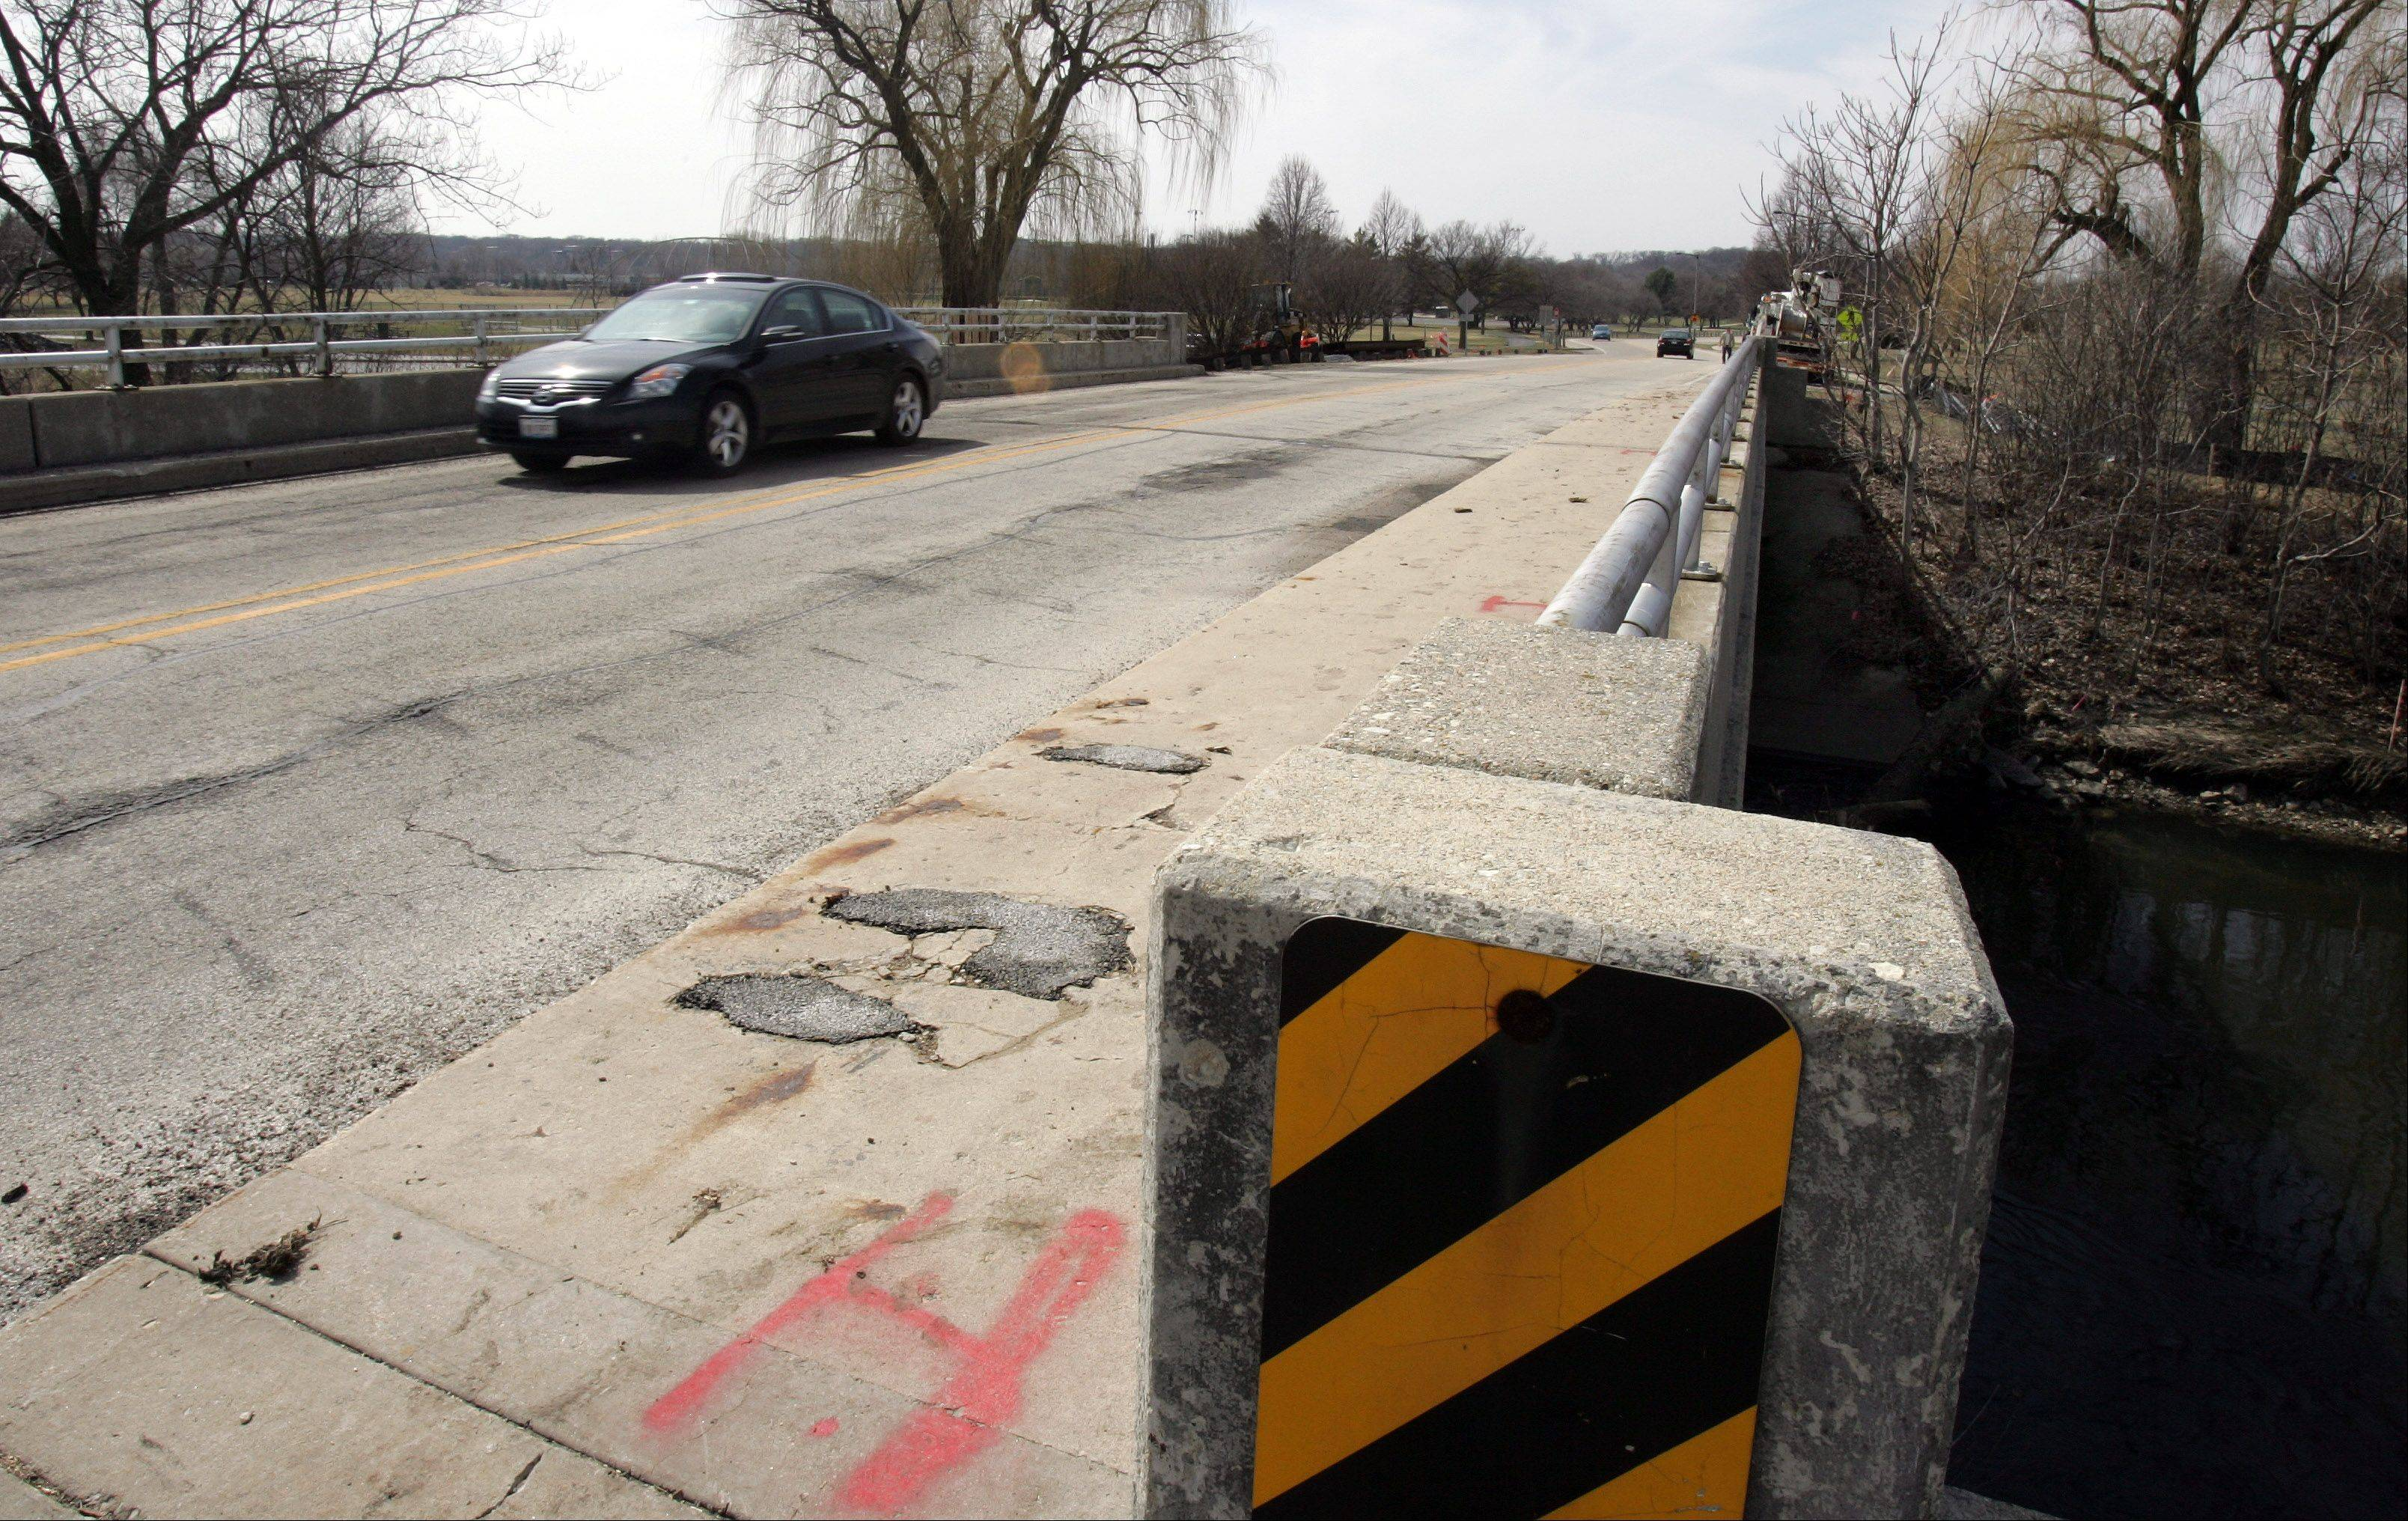 The old Short Street bridge in Lisle needed to be replaced because it was deteriorating, officials said. A replacement bridge is scheduled to open Thursday.